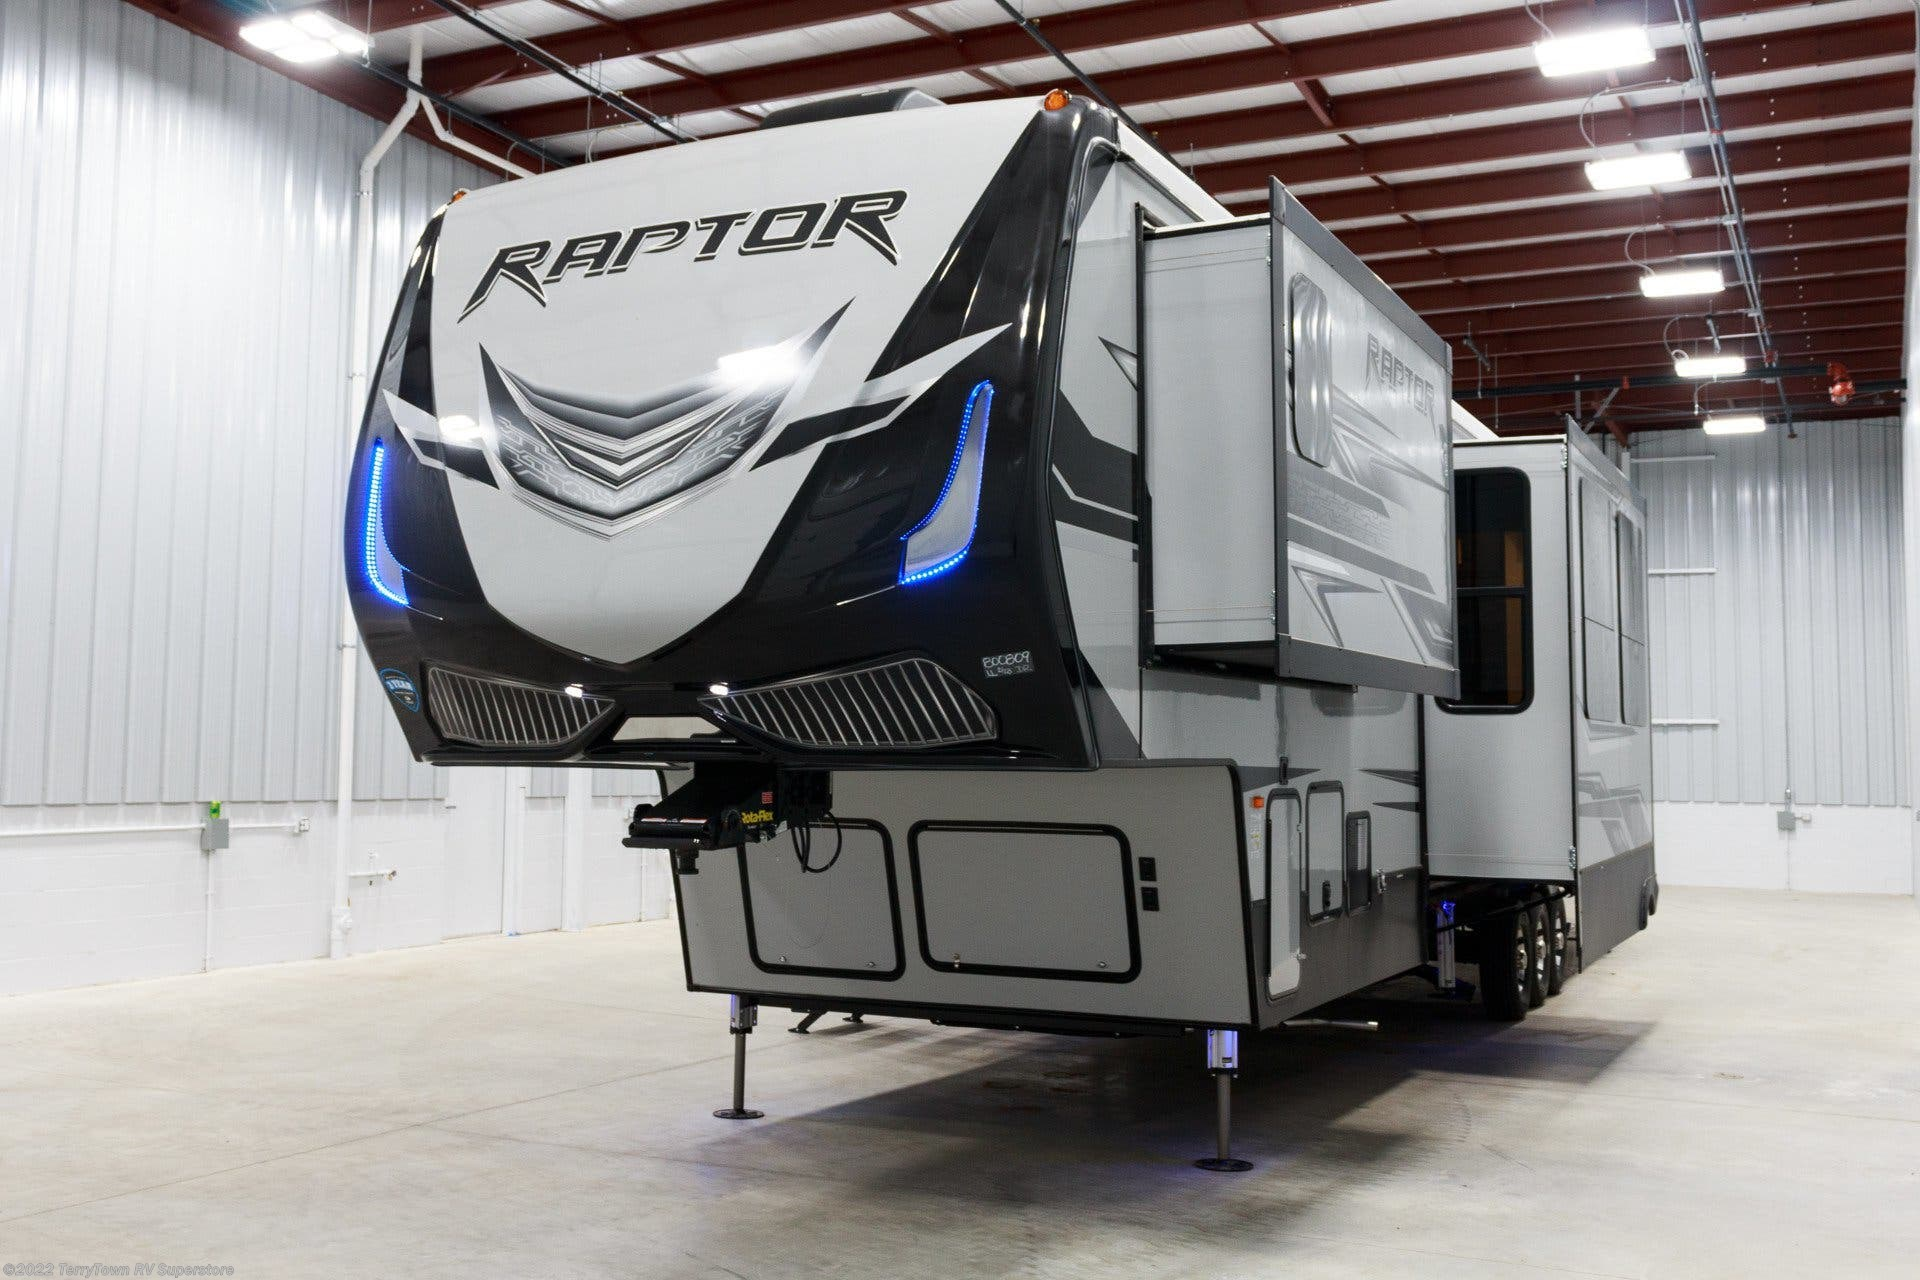 2018 Keystone Rv Raptor 428sp For Sale In Grand Rapids Mi 49548 Toy Hauler Wiring Diagram Previous